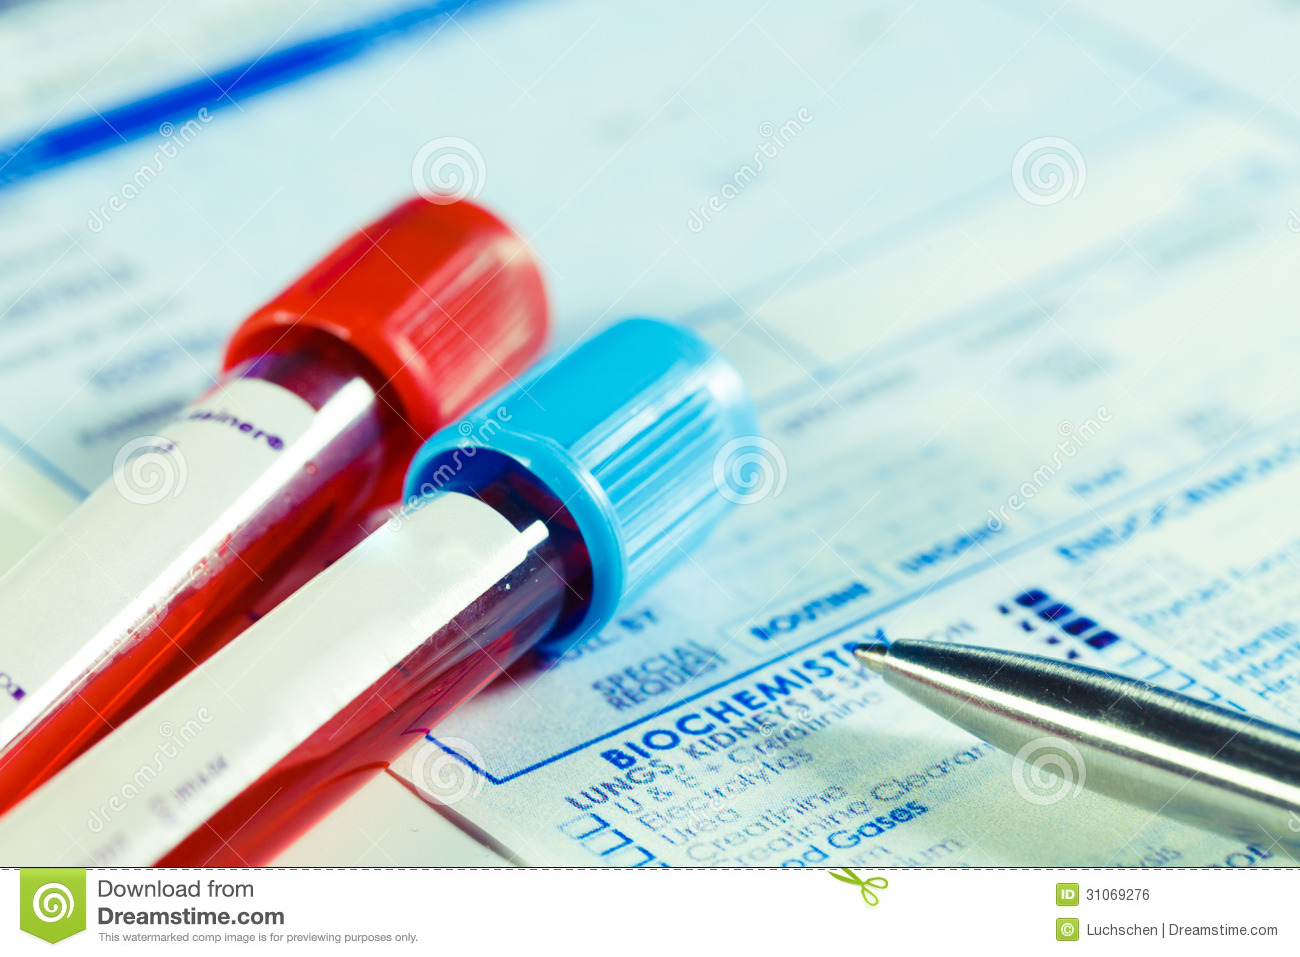 Biochemistry Blood Tests Royalty Free Stock Image - Image: 31069276